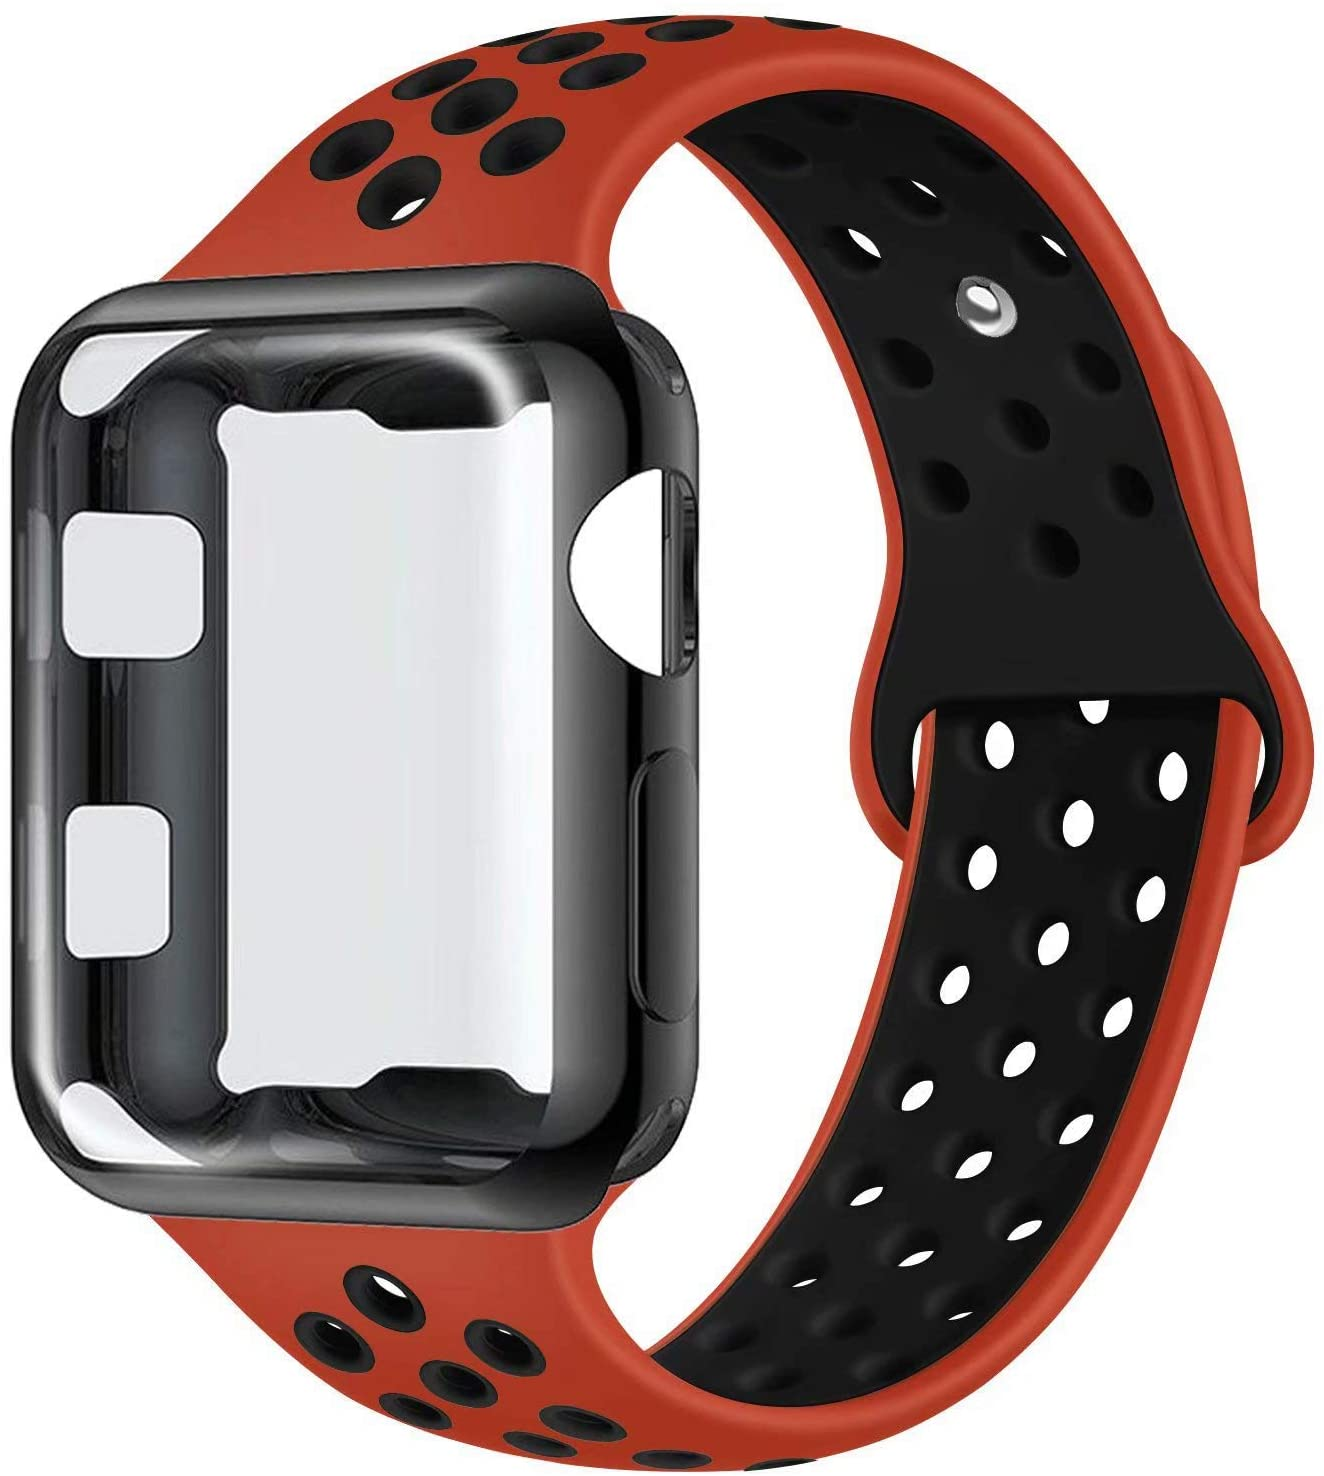 ADWLOF Compatible with Apple Watch Band with Case 38mm, Silicone Replacement Strap with Screen Protector Cover for Wristband for iWatch Series 3/2/1, Nike+, Sport, Edition,S/M,M/L,Red Black